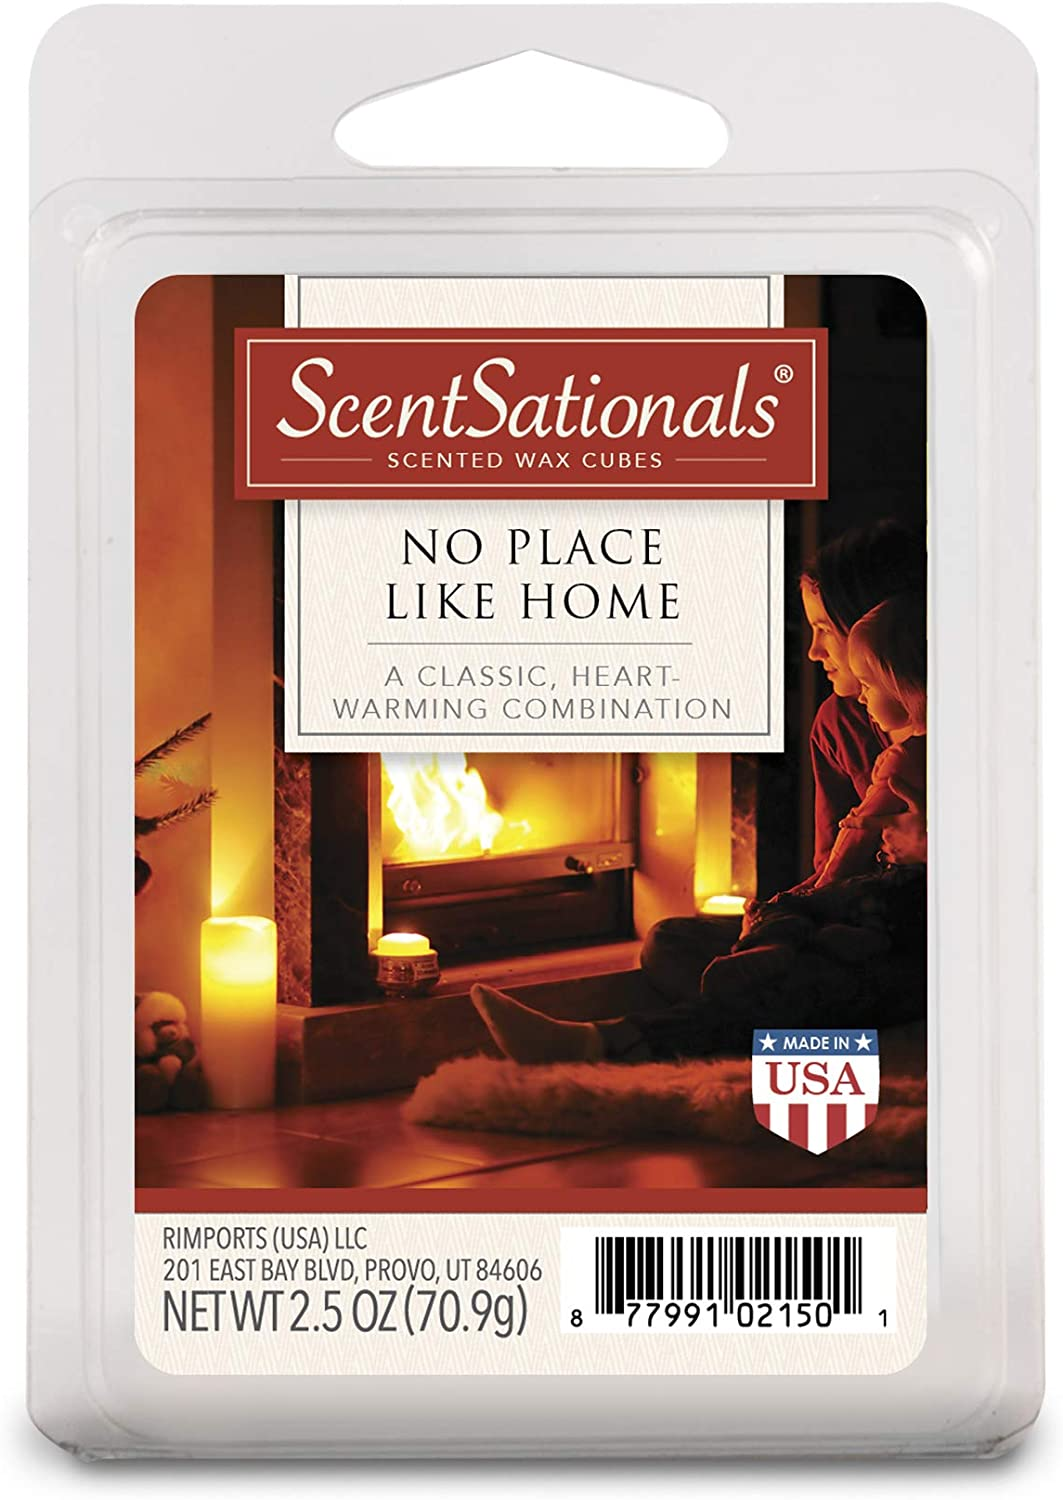 ScentSationals No Place Like Home Wax Cubes